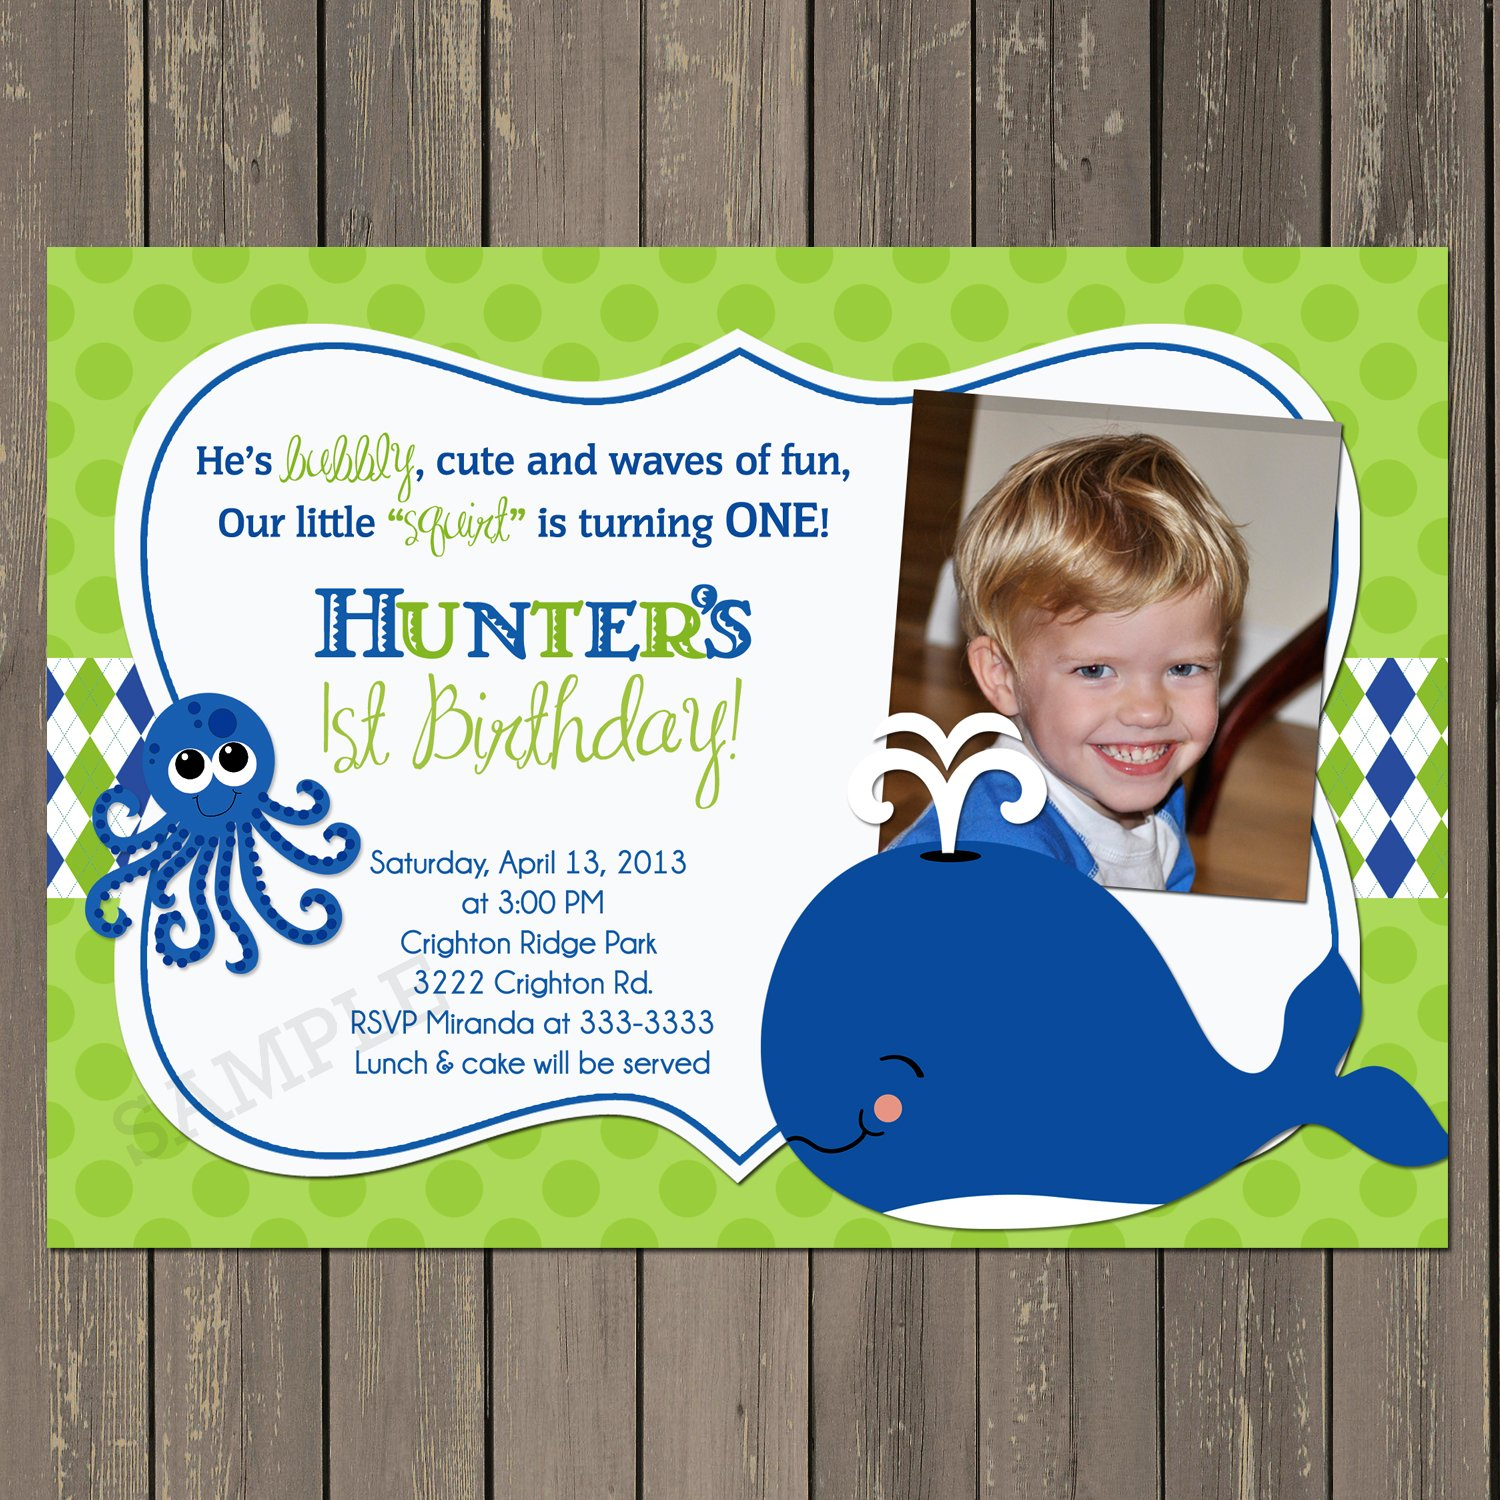 Amazon whale birthday invitation whale first birthday party amazon whale birthday invitation whale first birthday party invitation boys 1st birthday invite preppy navy and green custom handmade stopboris Choice Image